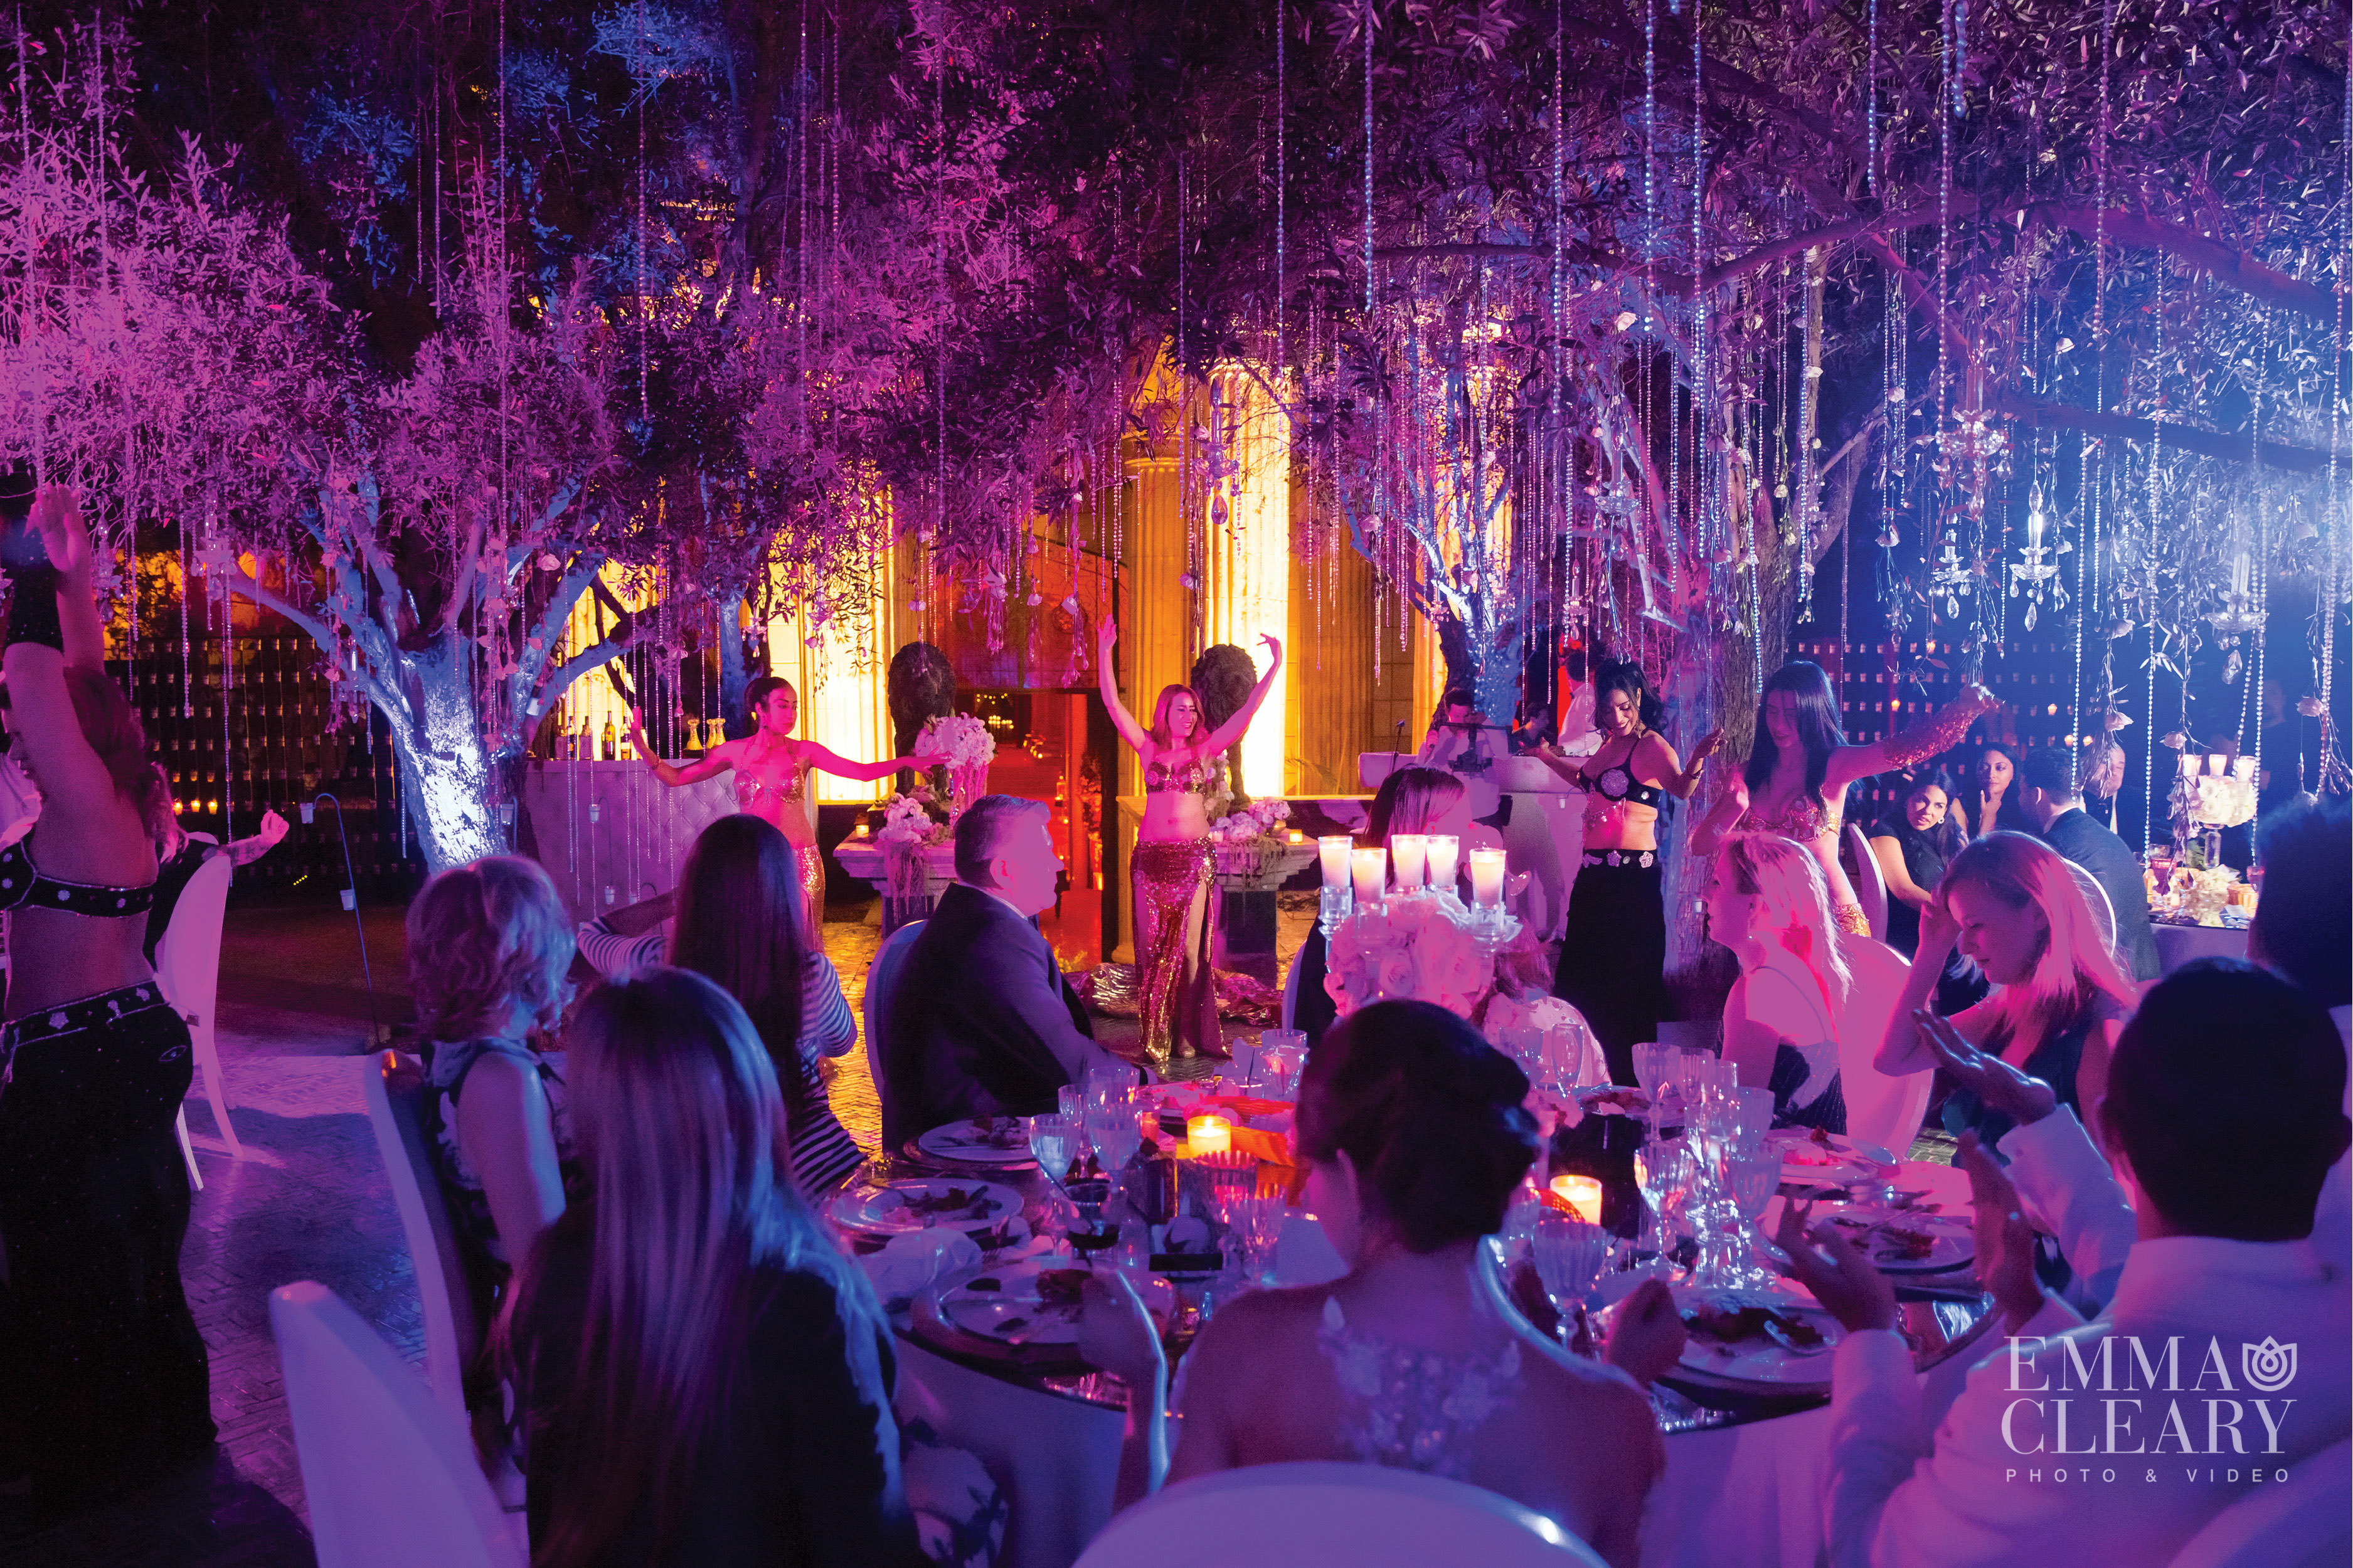 Emma_cleary_photography Destination Wedding Morrocco17